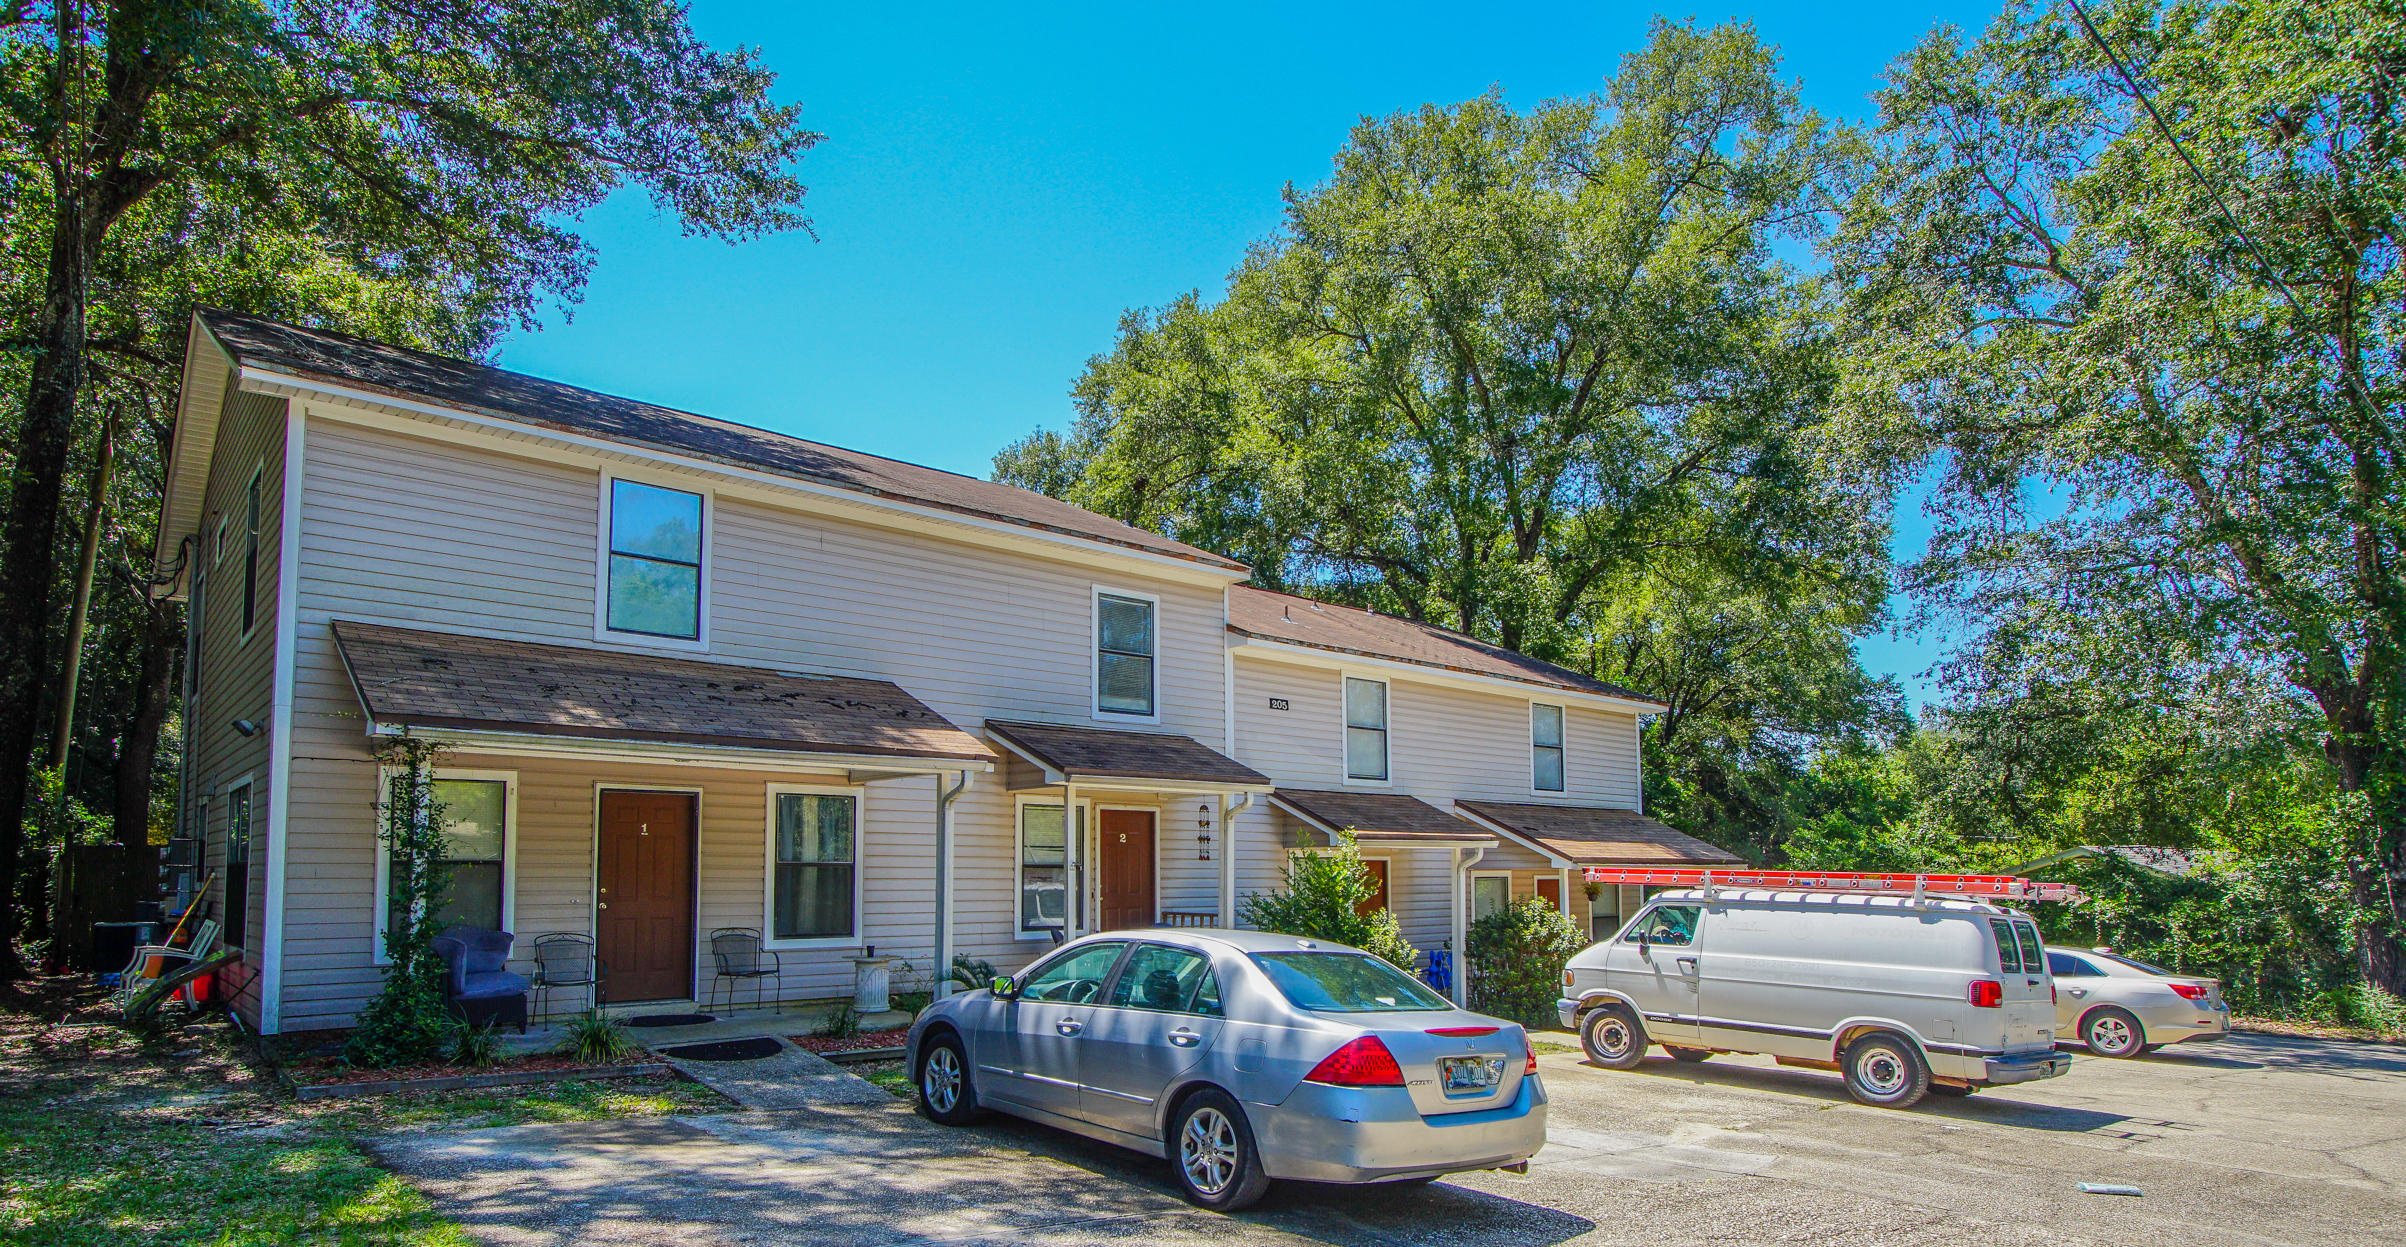 205 Marquette Ave, Niceville, FL, 32578